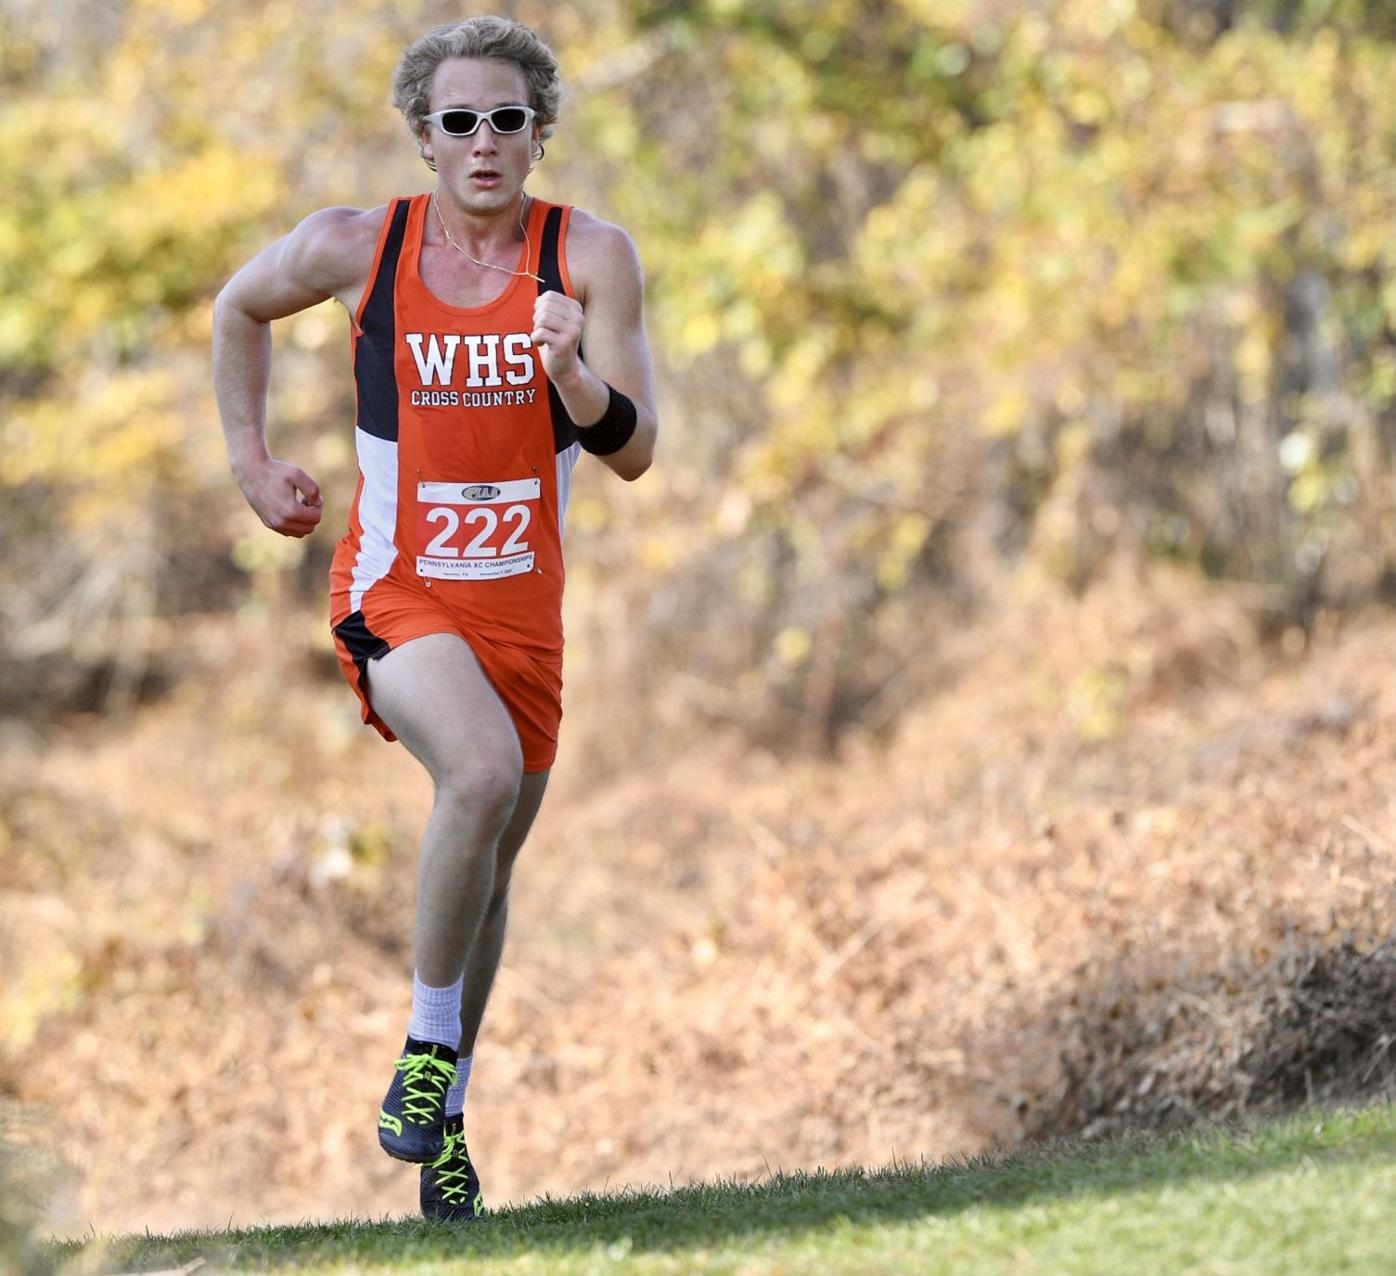 PIAA CROSS COUNTRY: Area's top runners compete at state meet